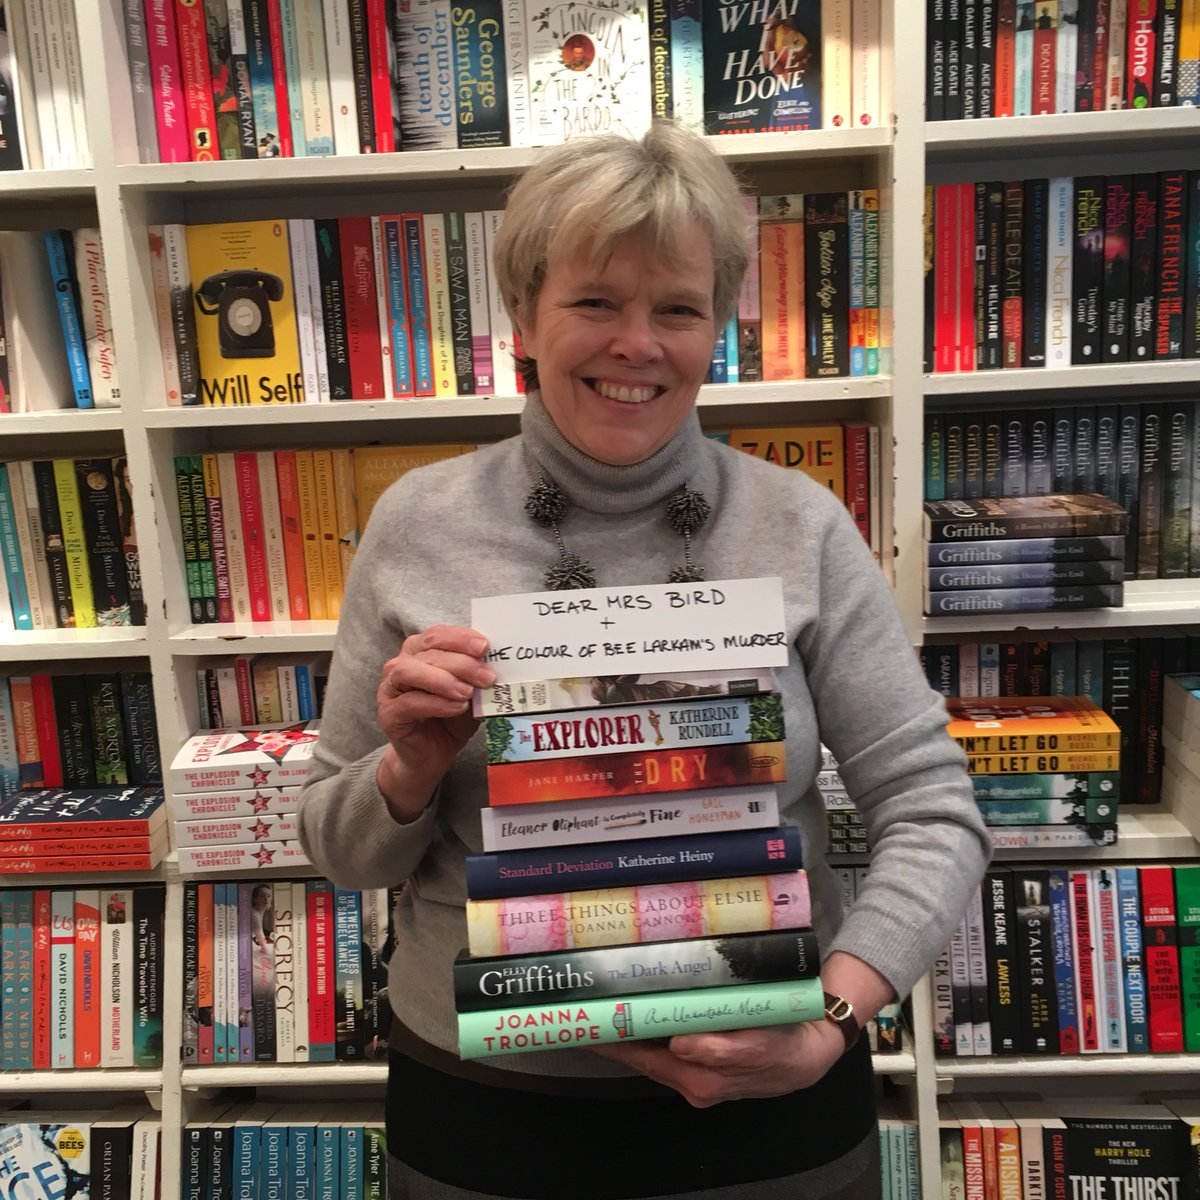 And here is @hazelbookseller, including Dear Mrs Bird and The Colour of Bee Larkham's Murder, which aren't quite out yet